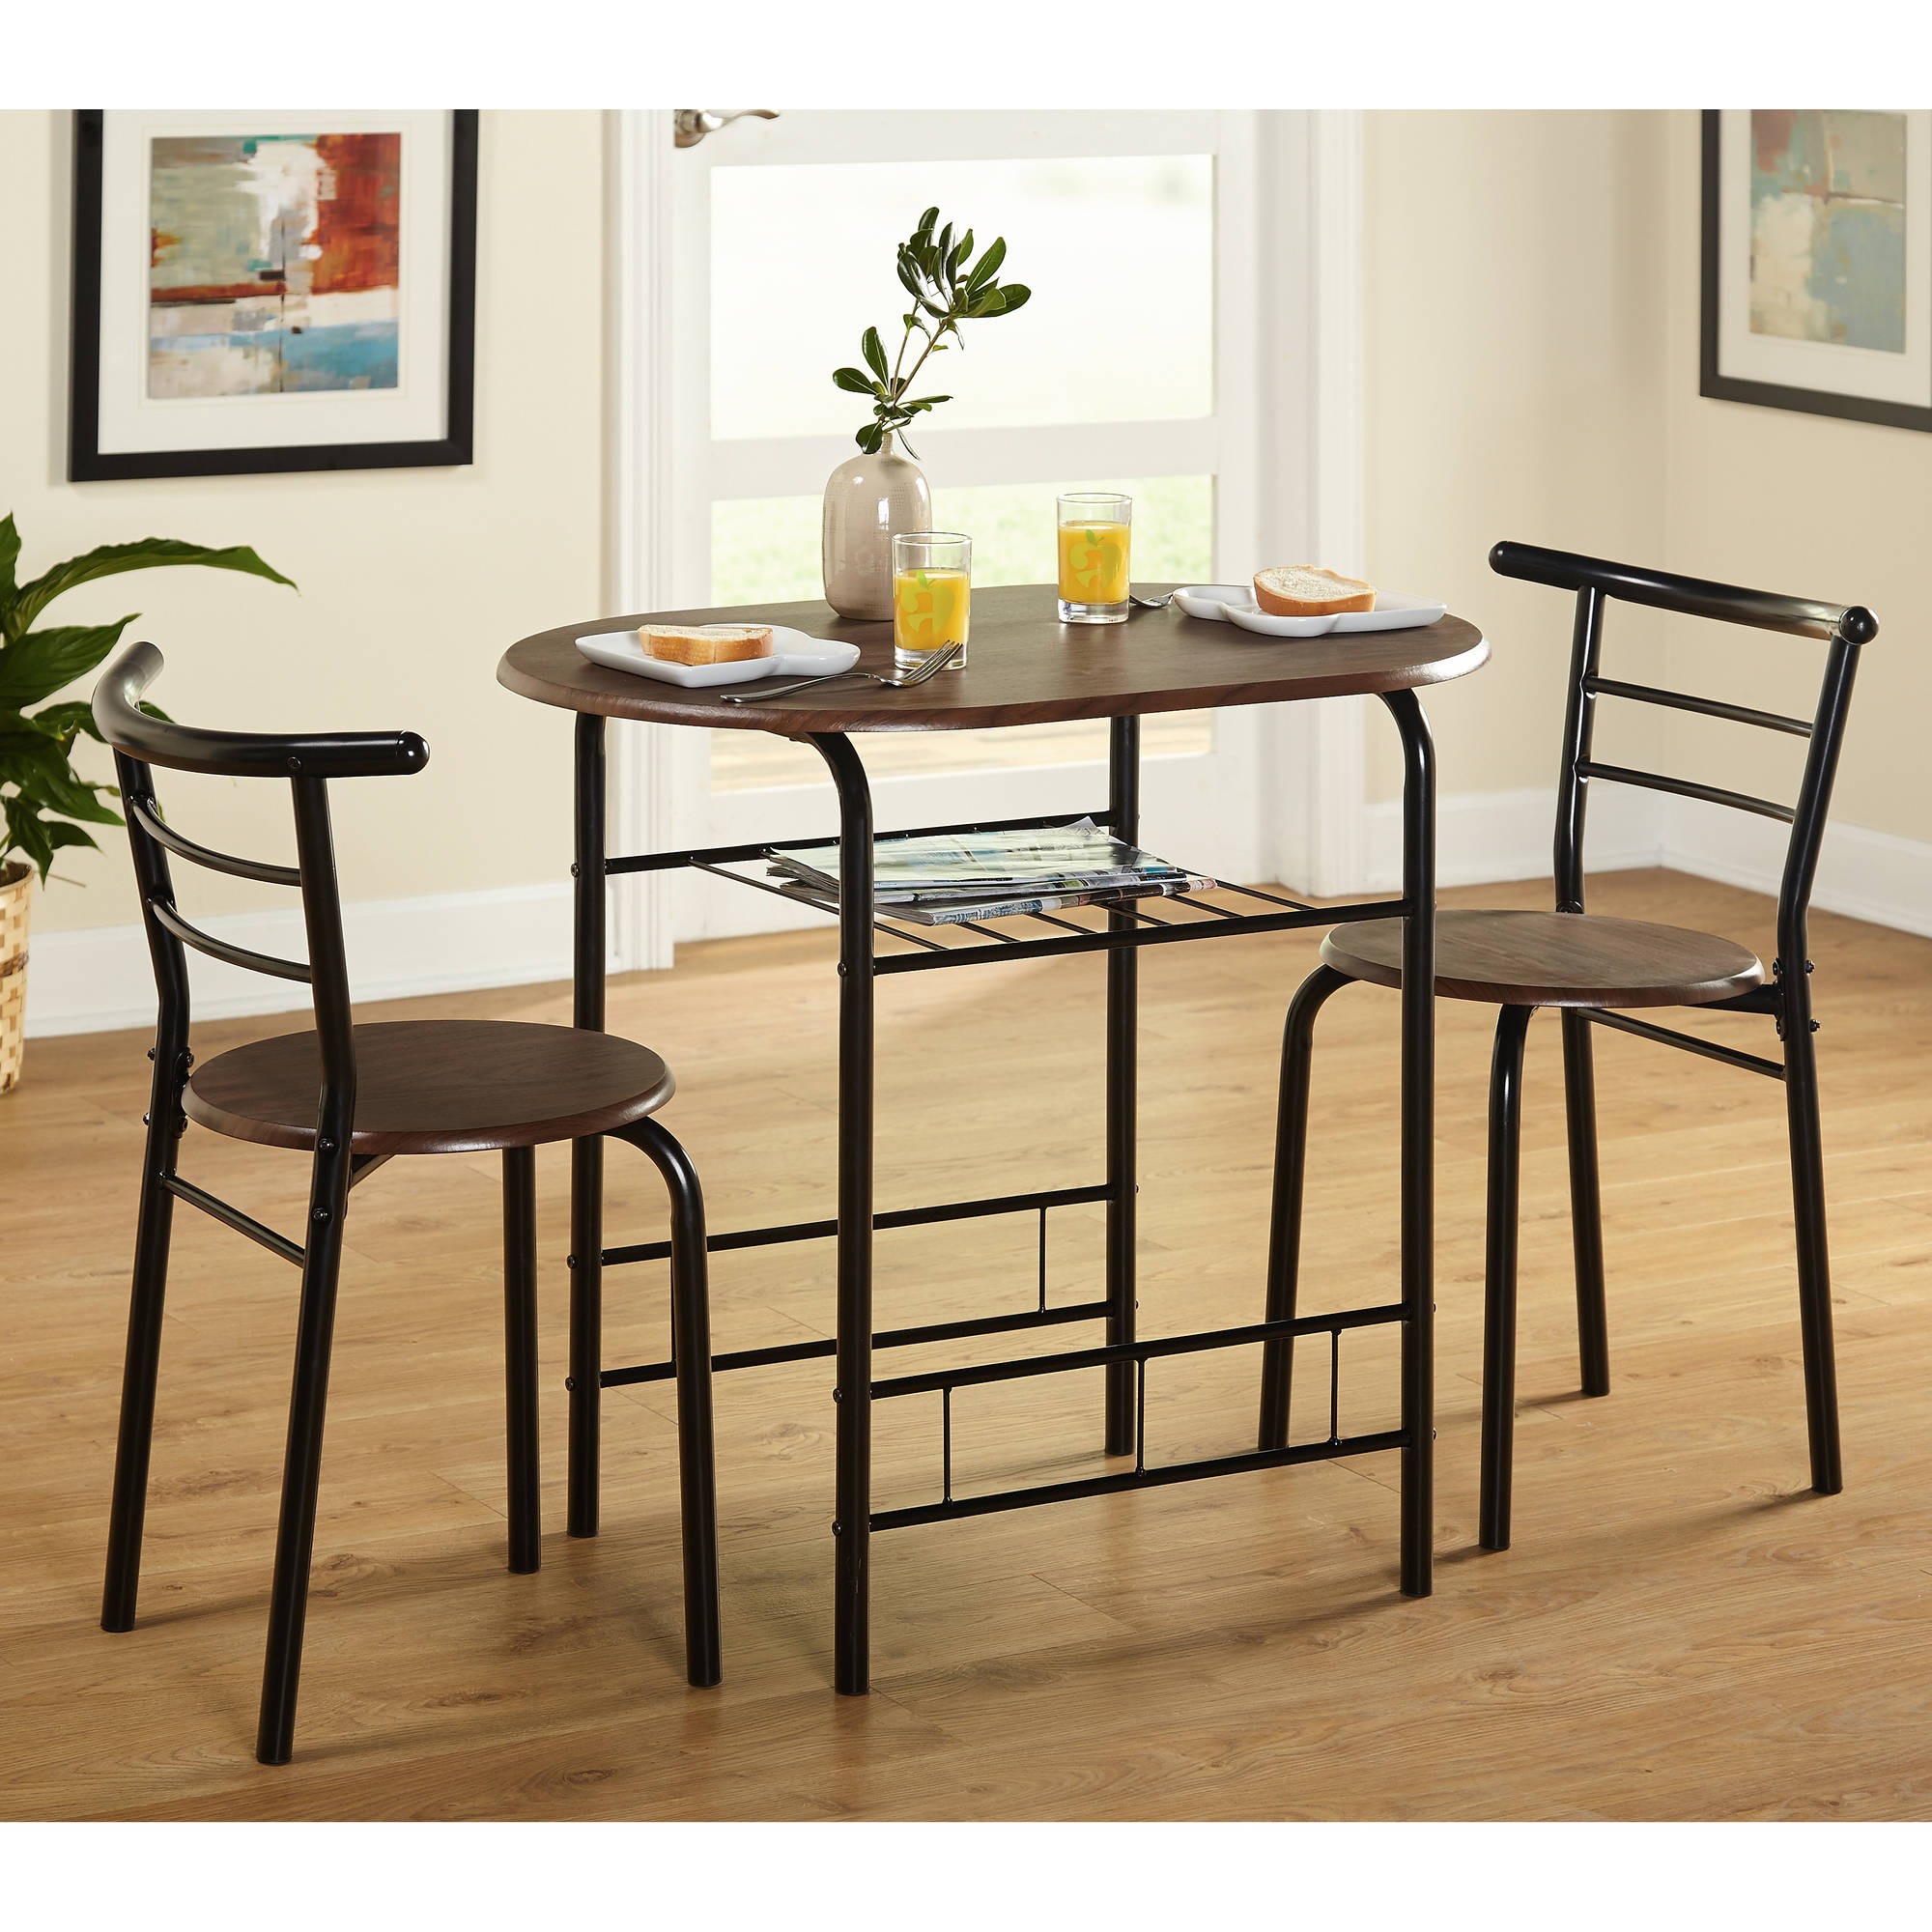 3 piece table and chair set small swivel tms bistro dining walmart com